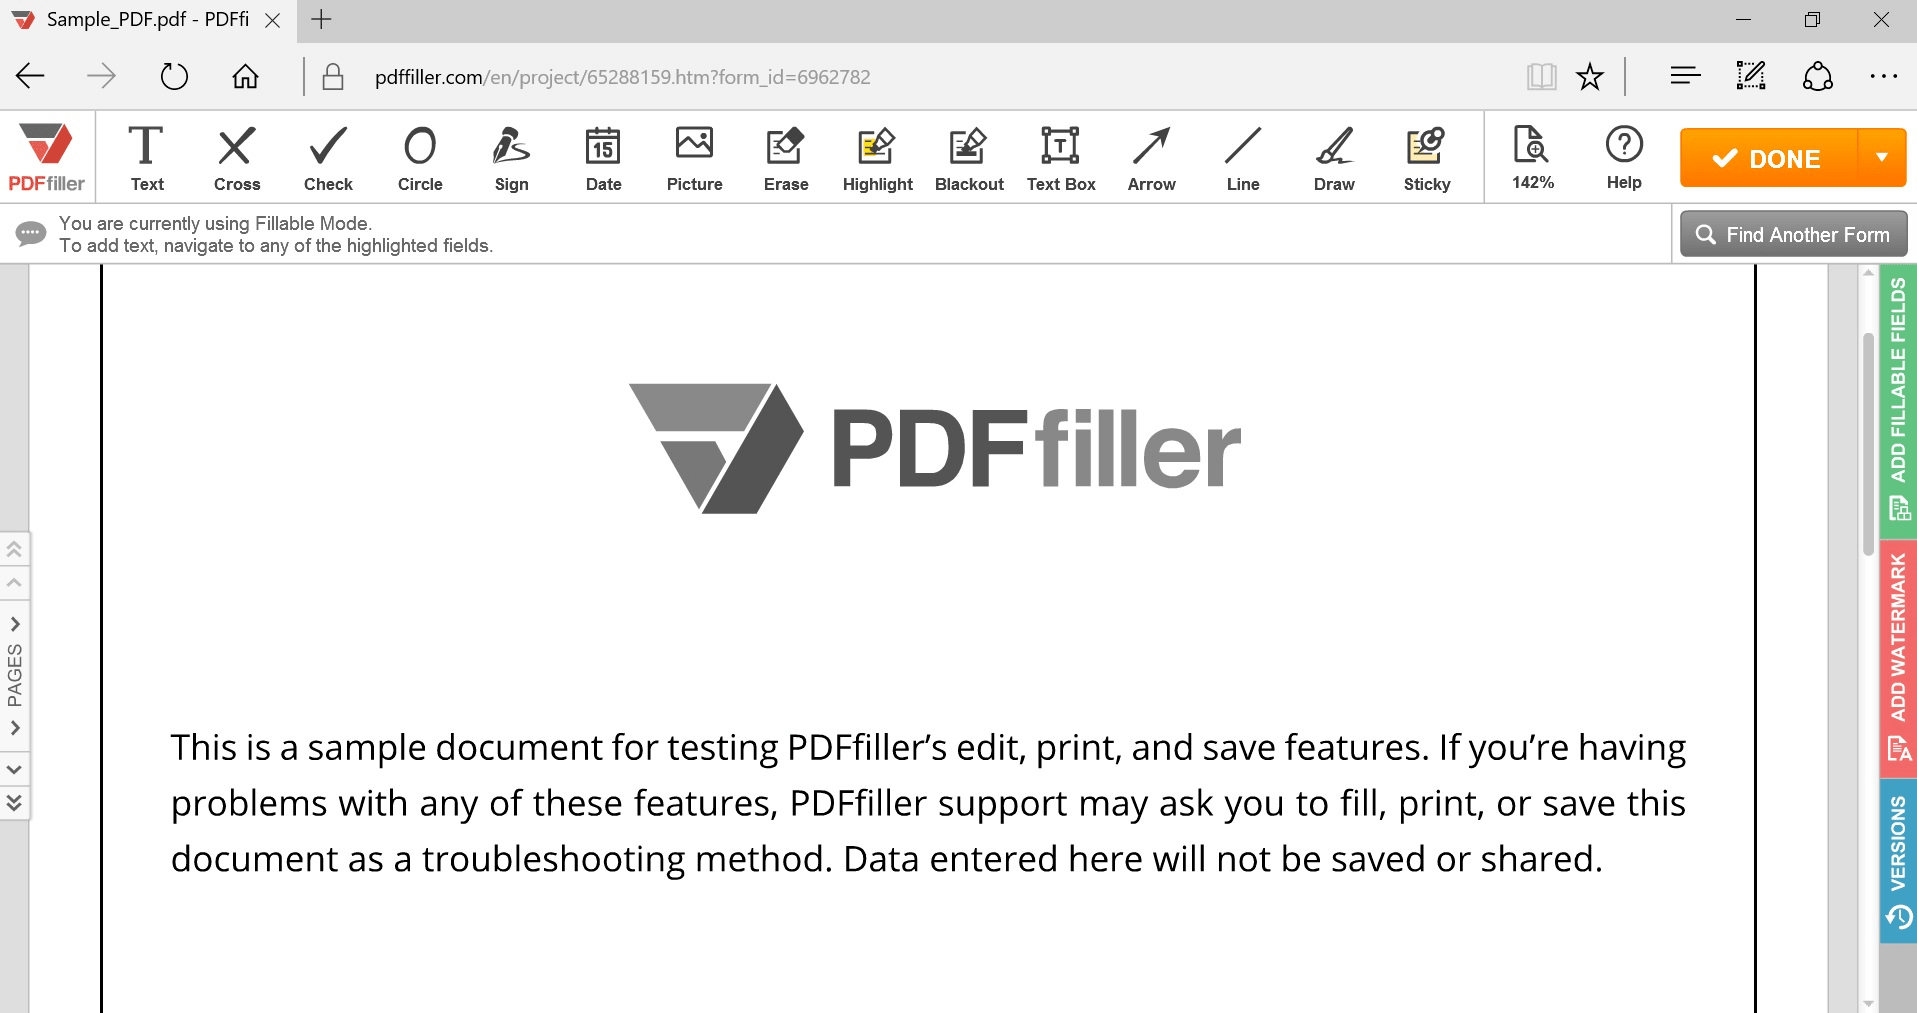 Sample Pdf File For Testing